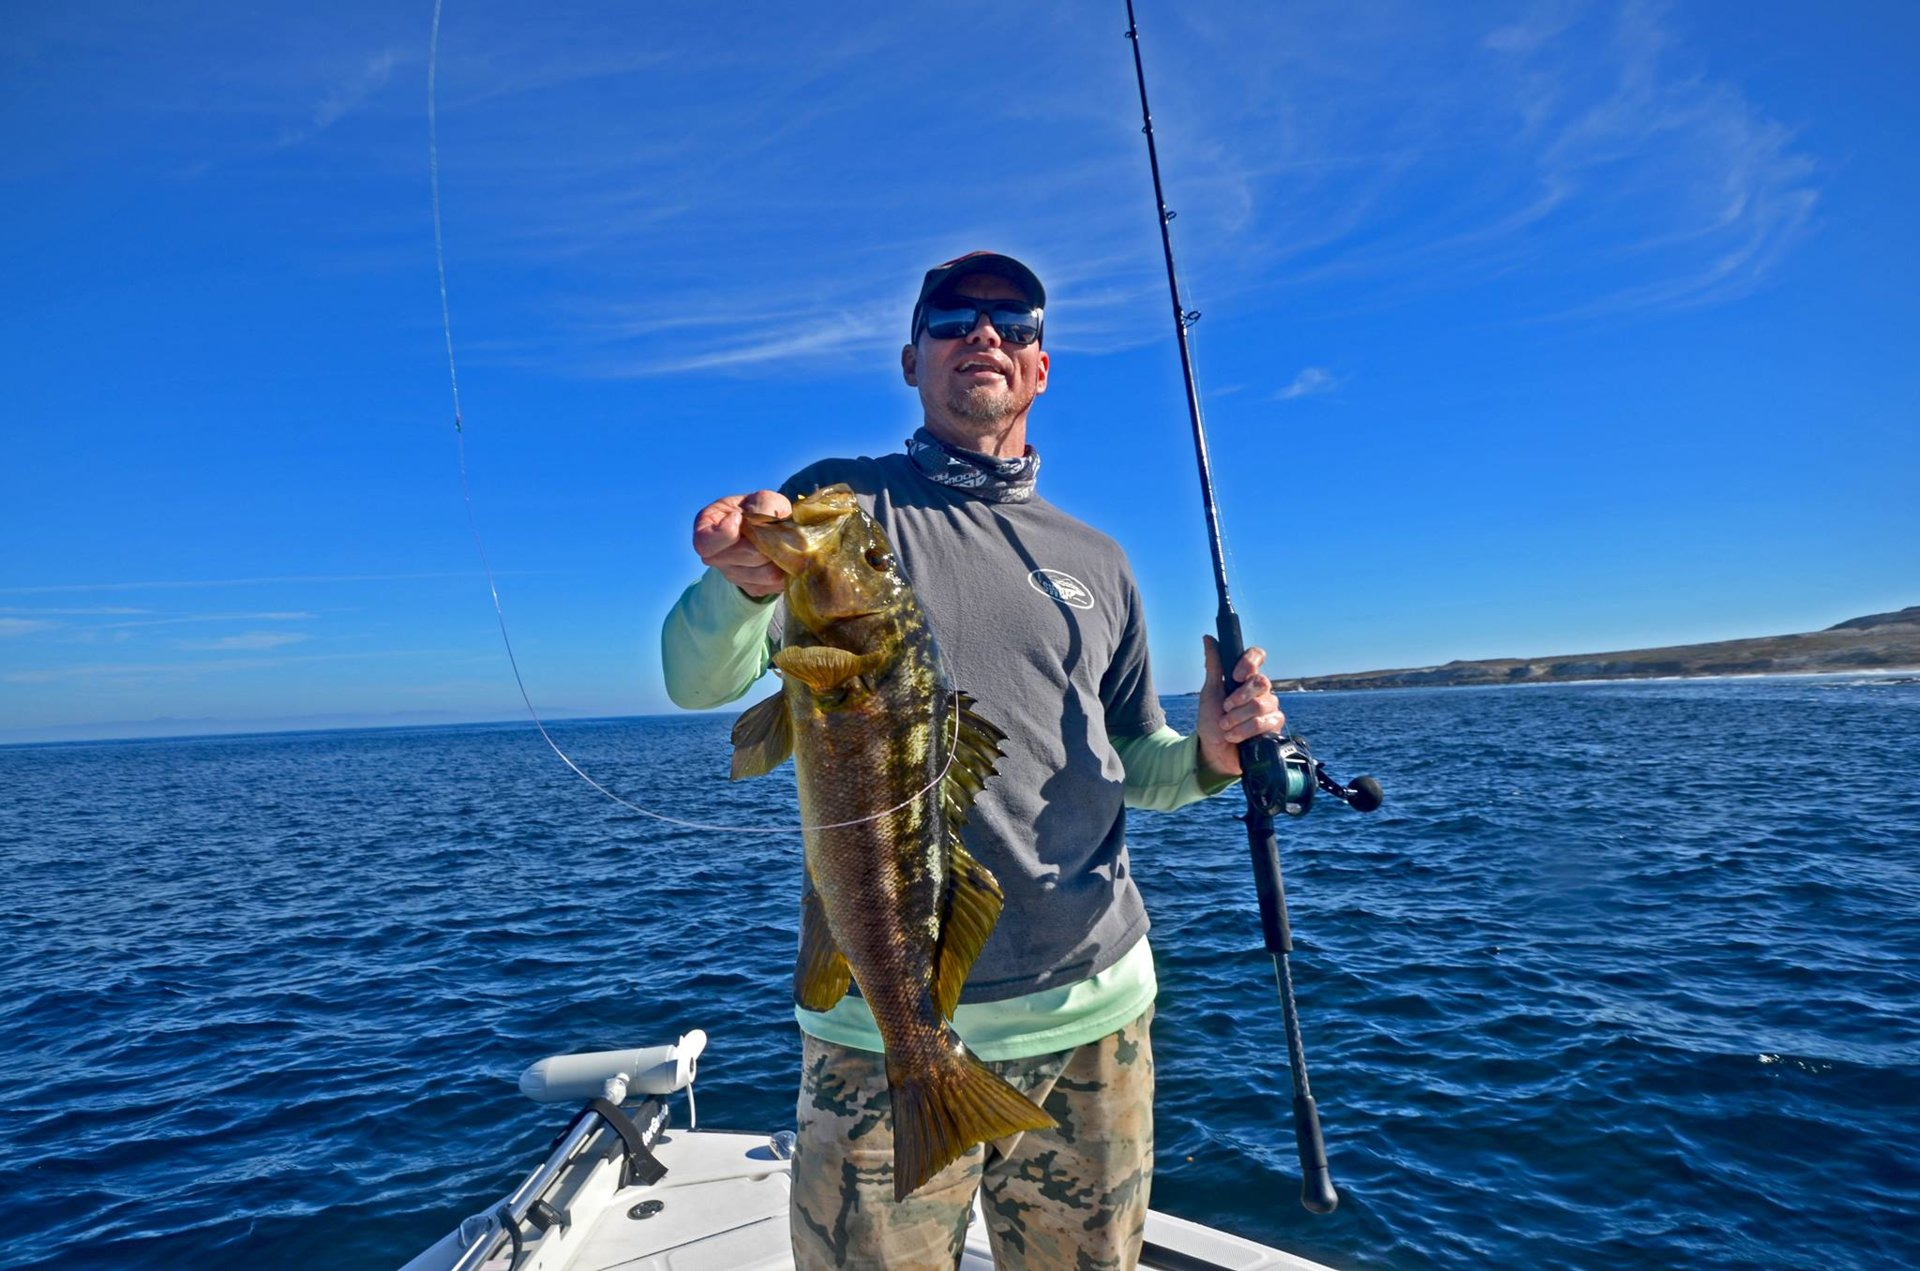 Black friday at sci 2nd best day of calico fishing ever for Best fishing days 2017